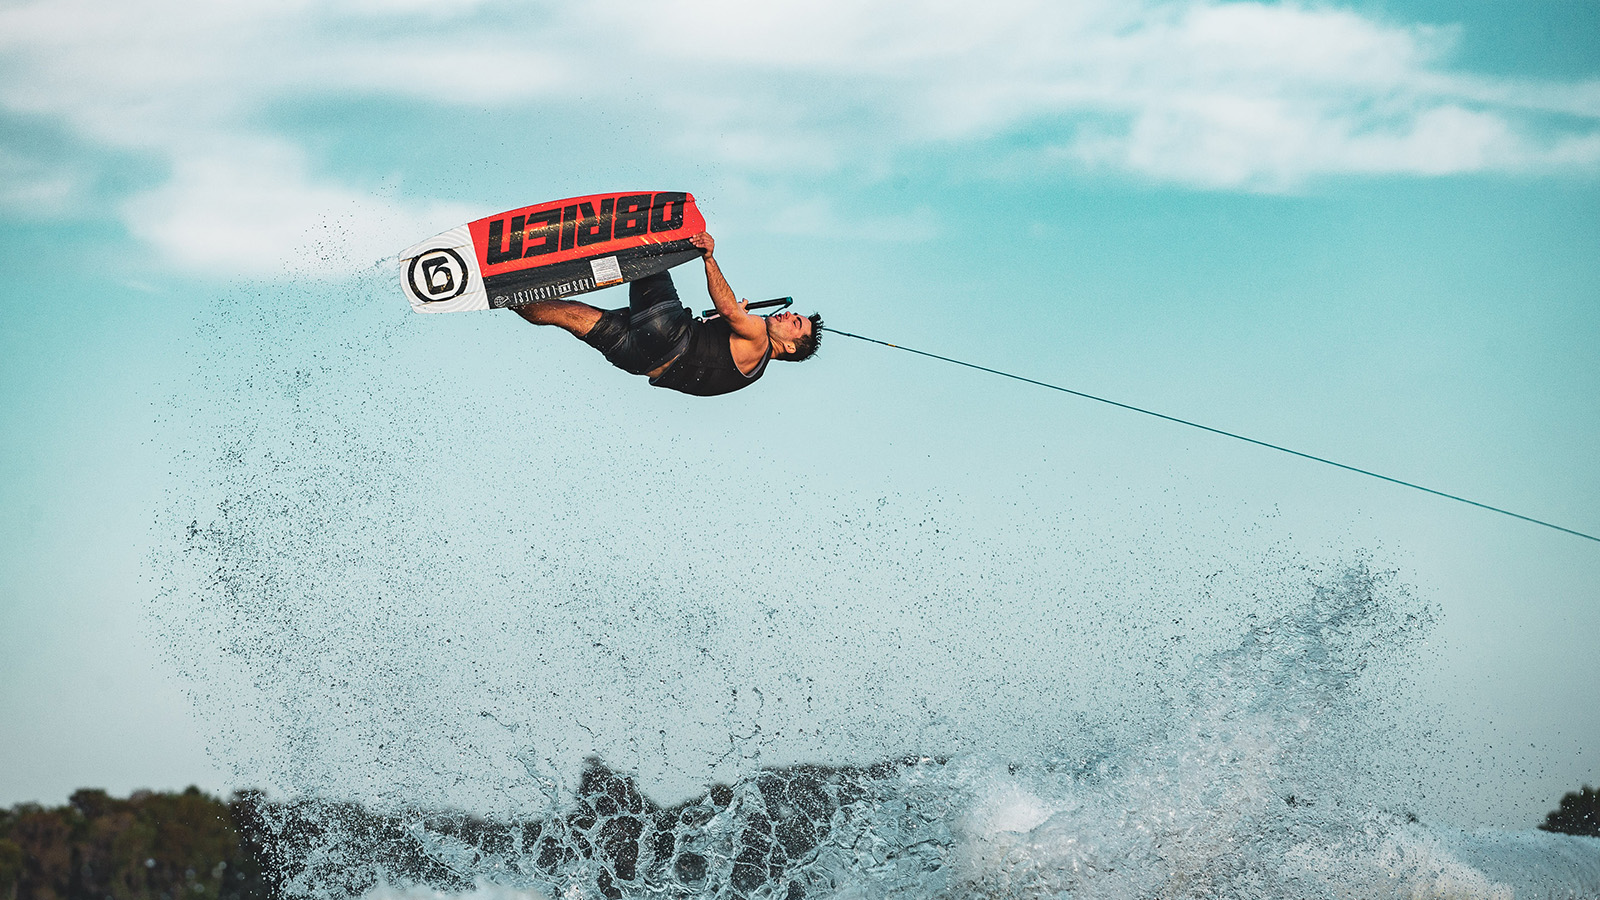 O'brien SS20 Wakeboard Hard Goods